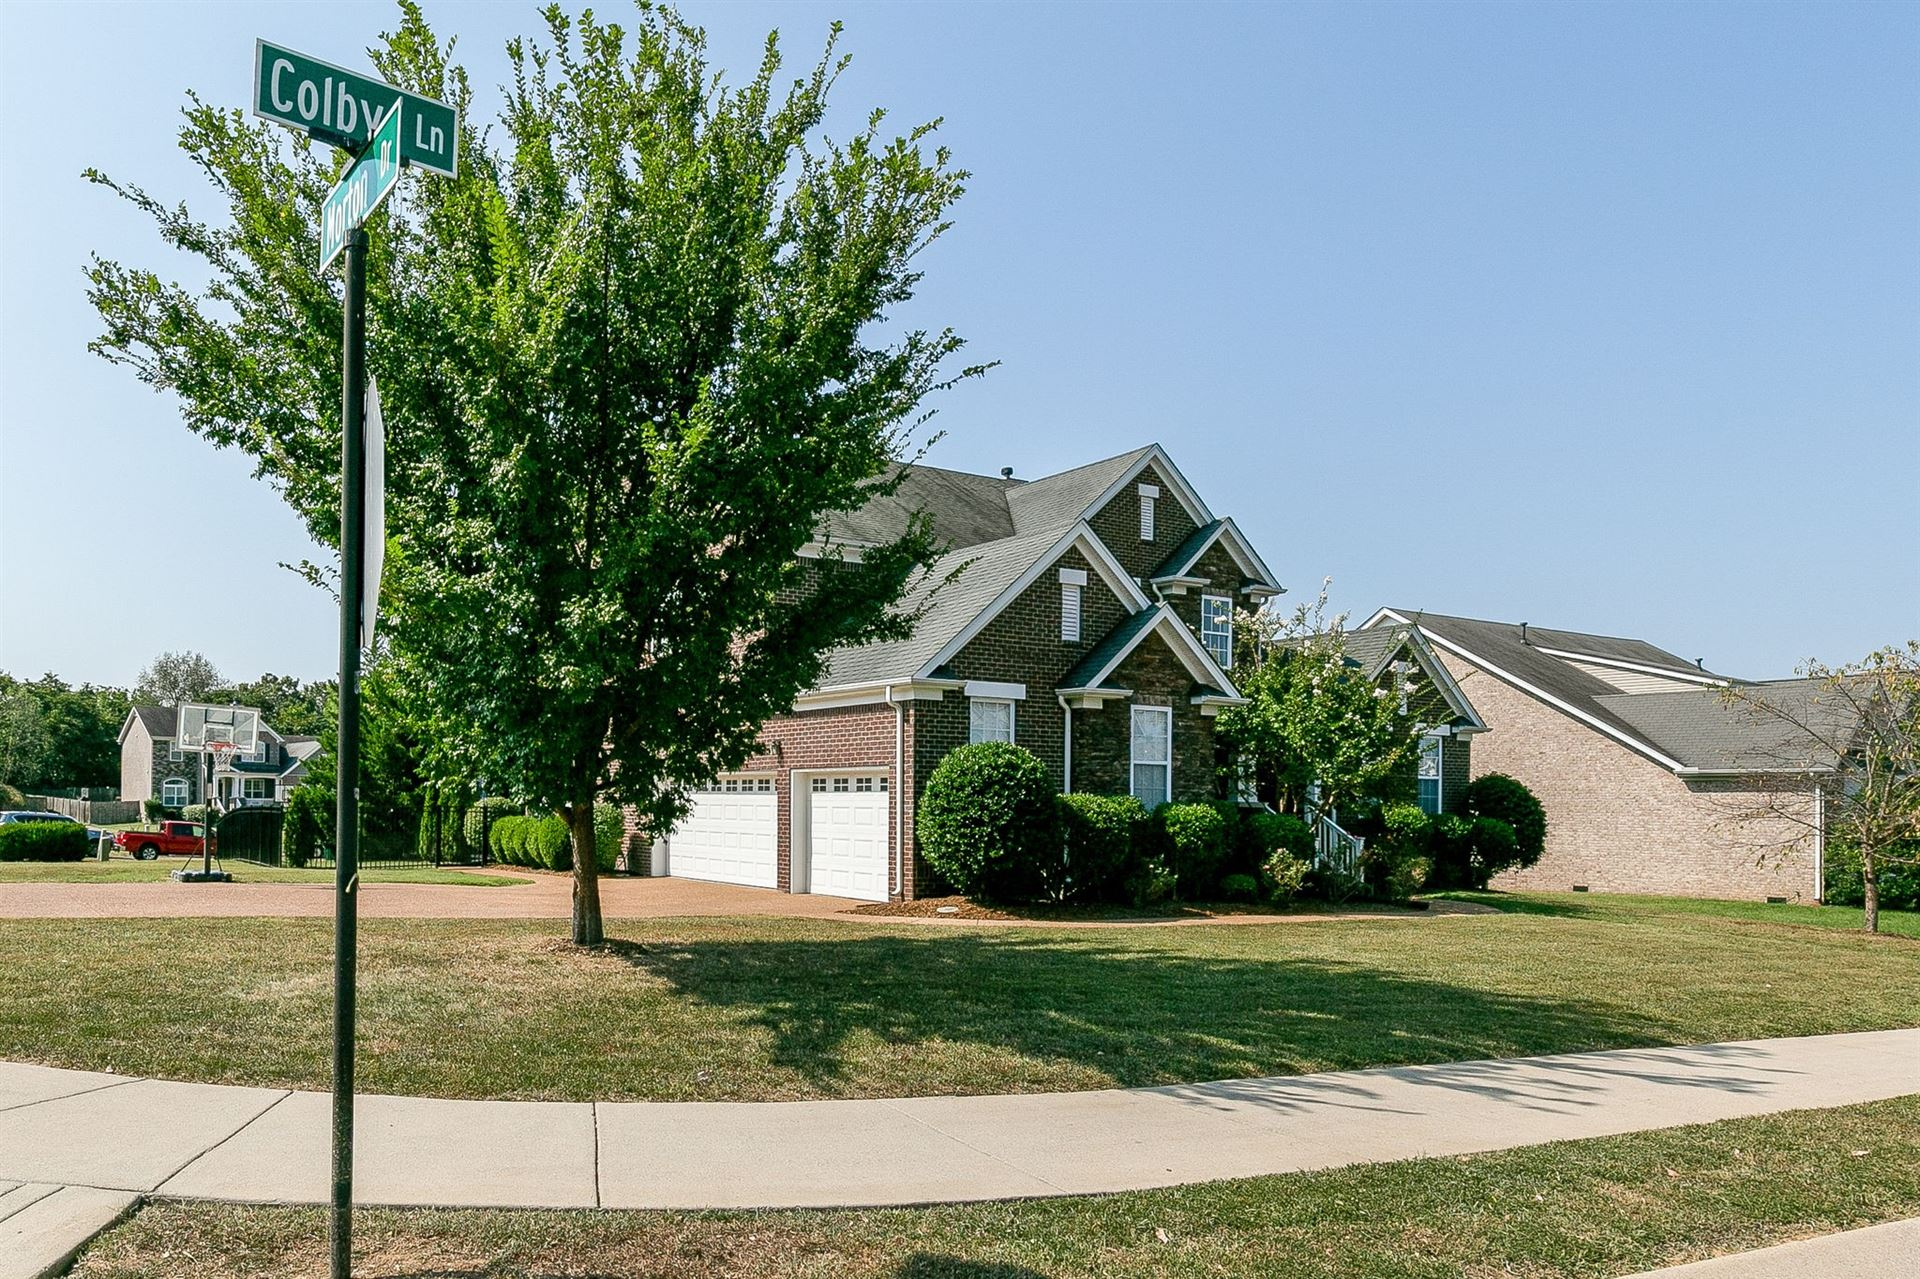 Photo of 4001 Colby Ln, Spring Hill, TN 37174 (MLS # 2263514)